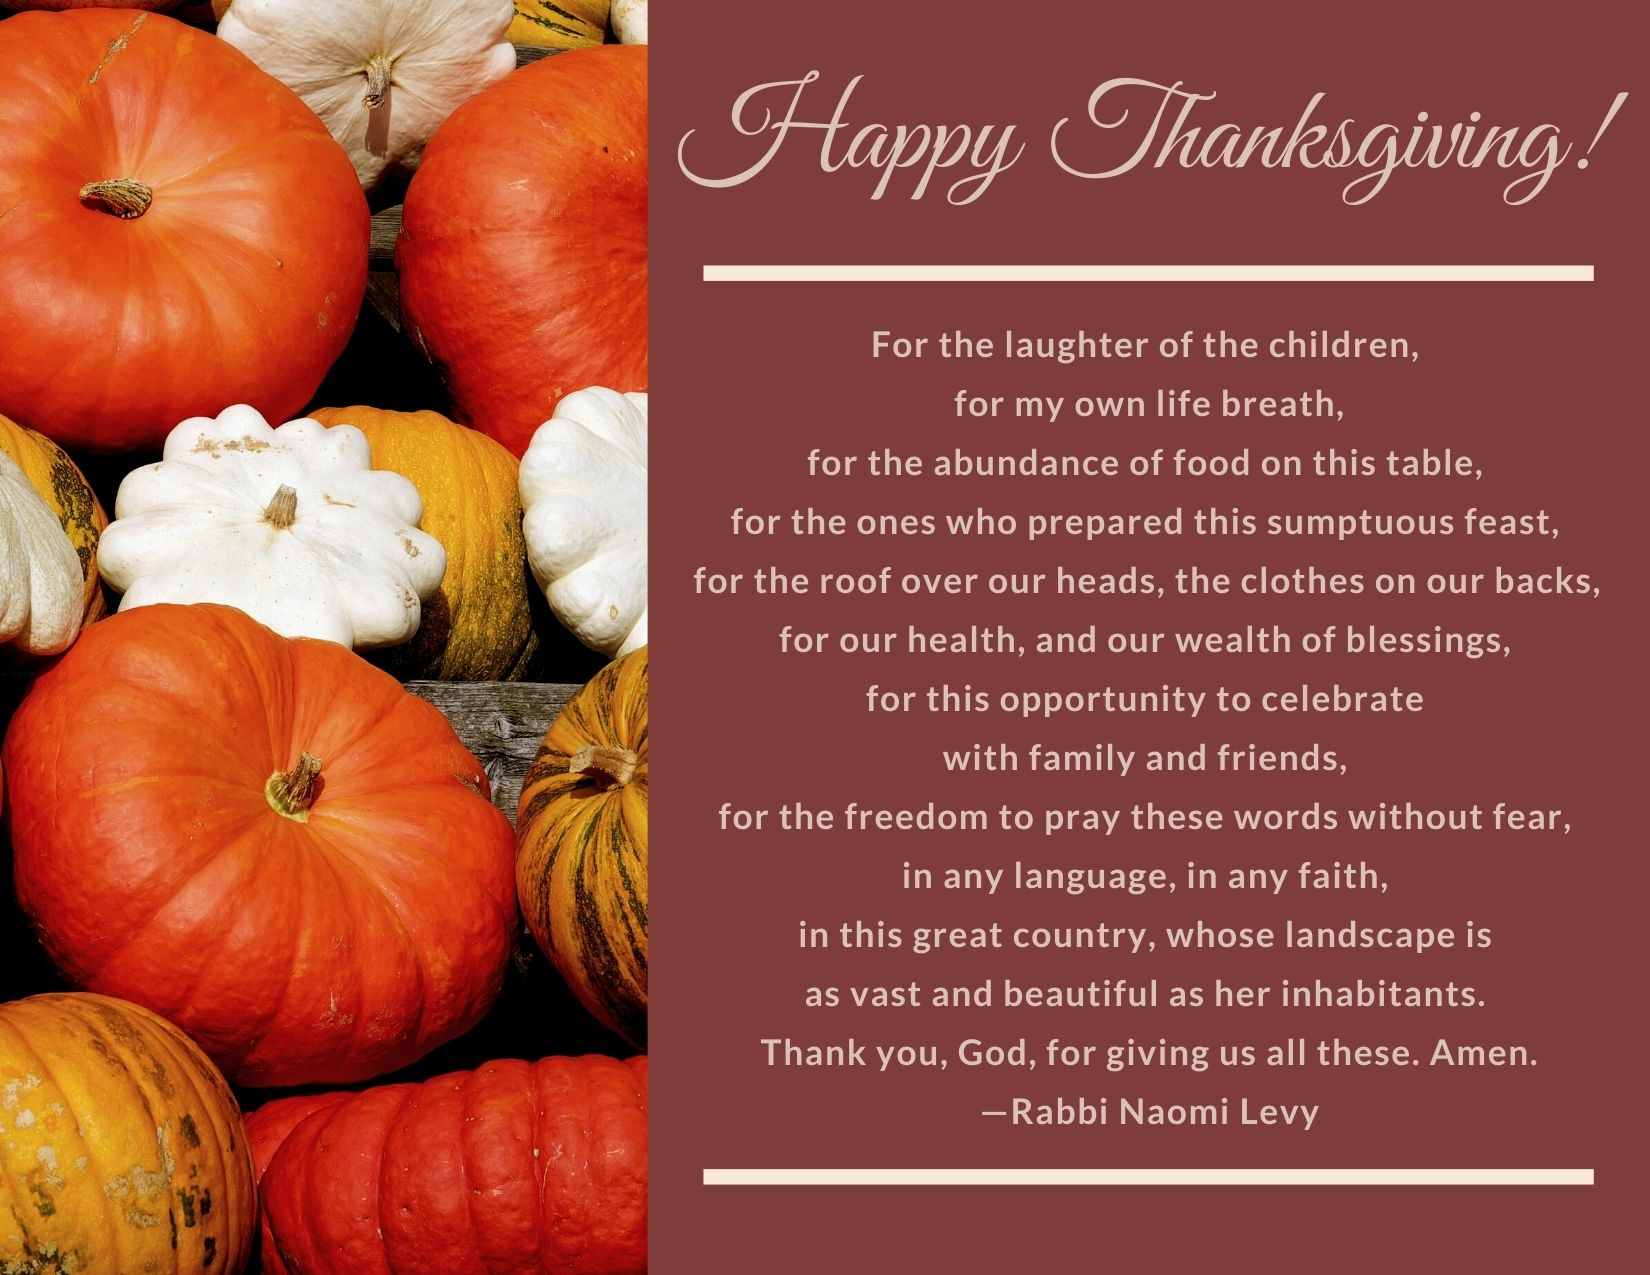 TEXT: Happy Thanksgiving! Prayer of Thanks. IMAGE: Gourds